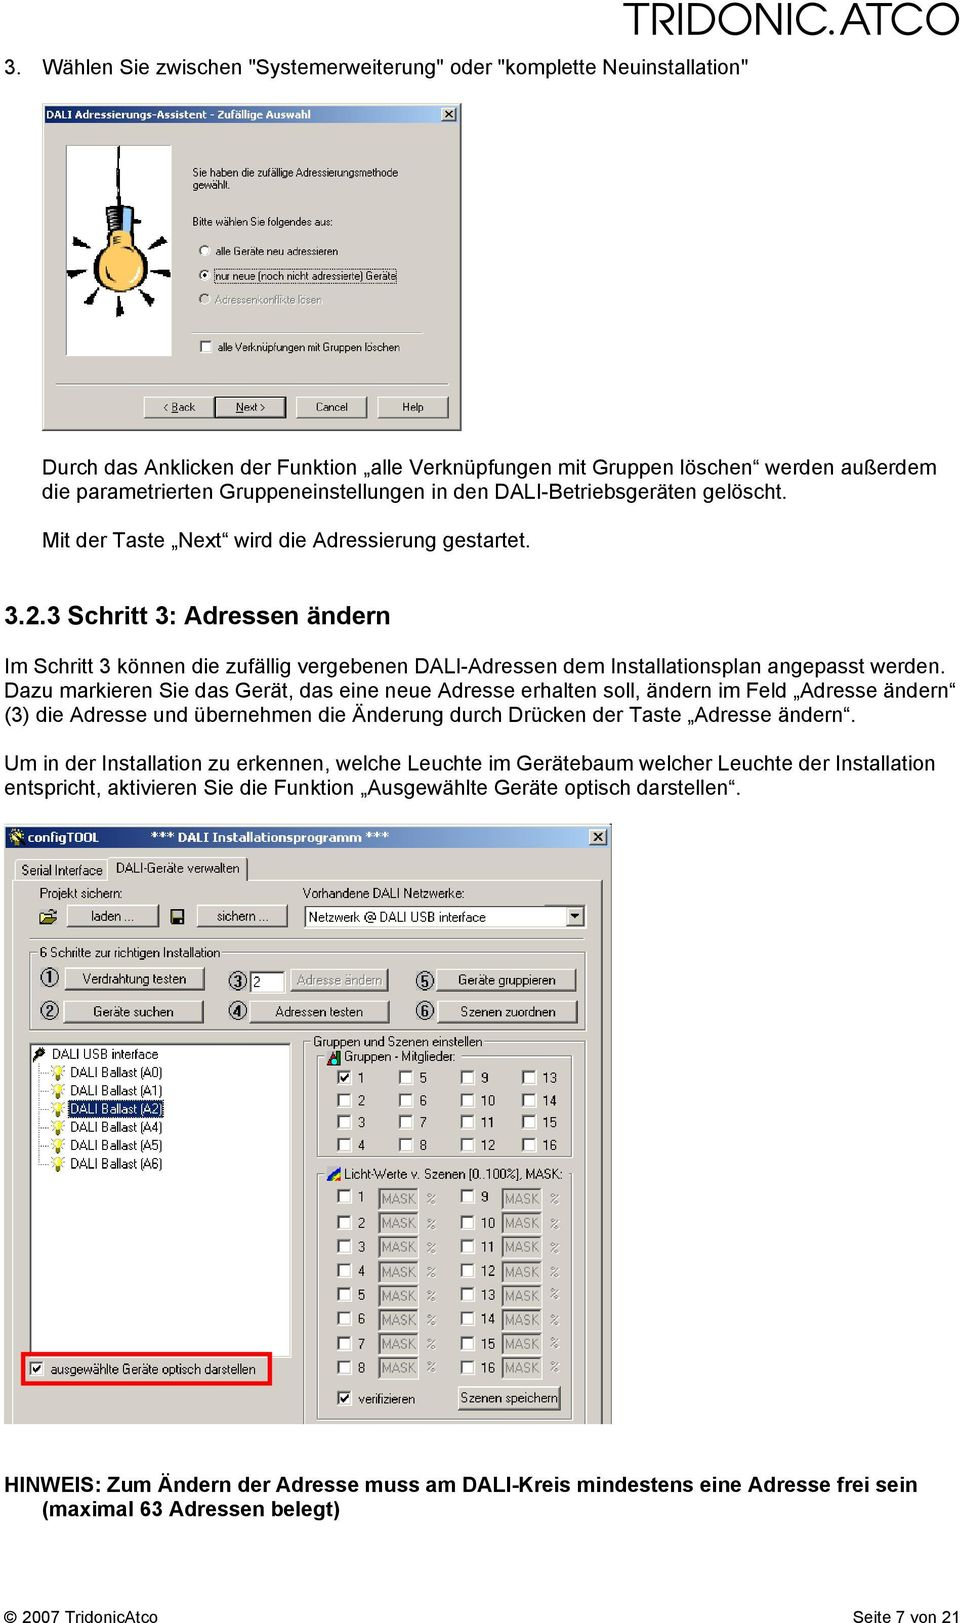 luxcontrol Lighting Control System TECHNICAL INFORMATION - PDF